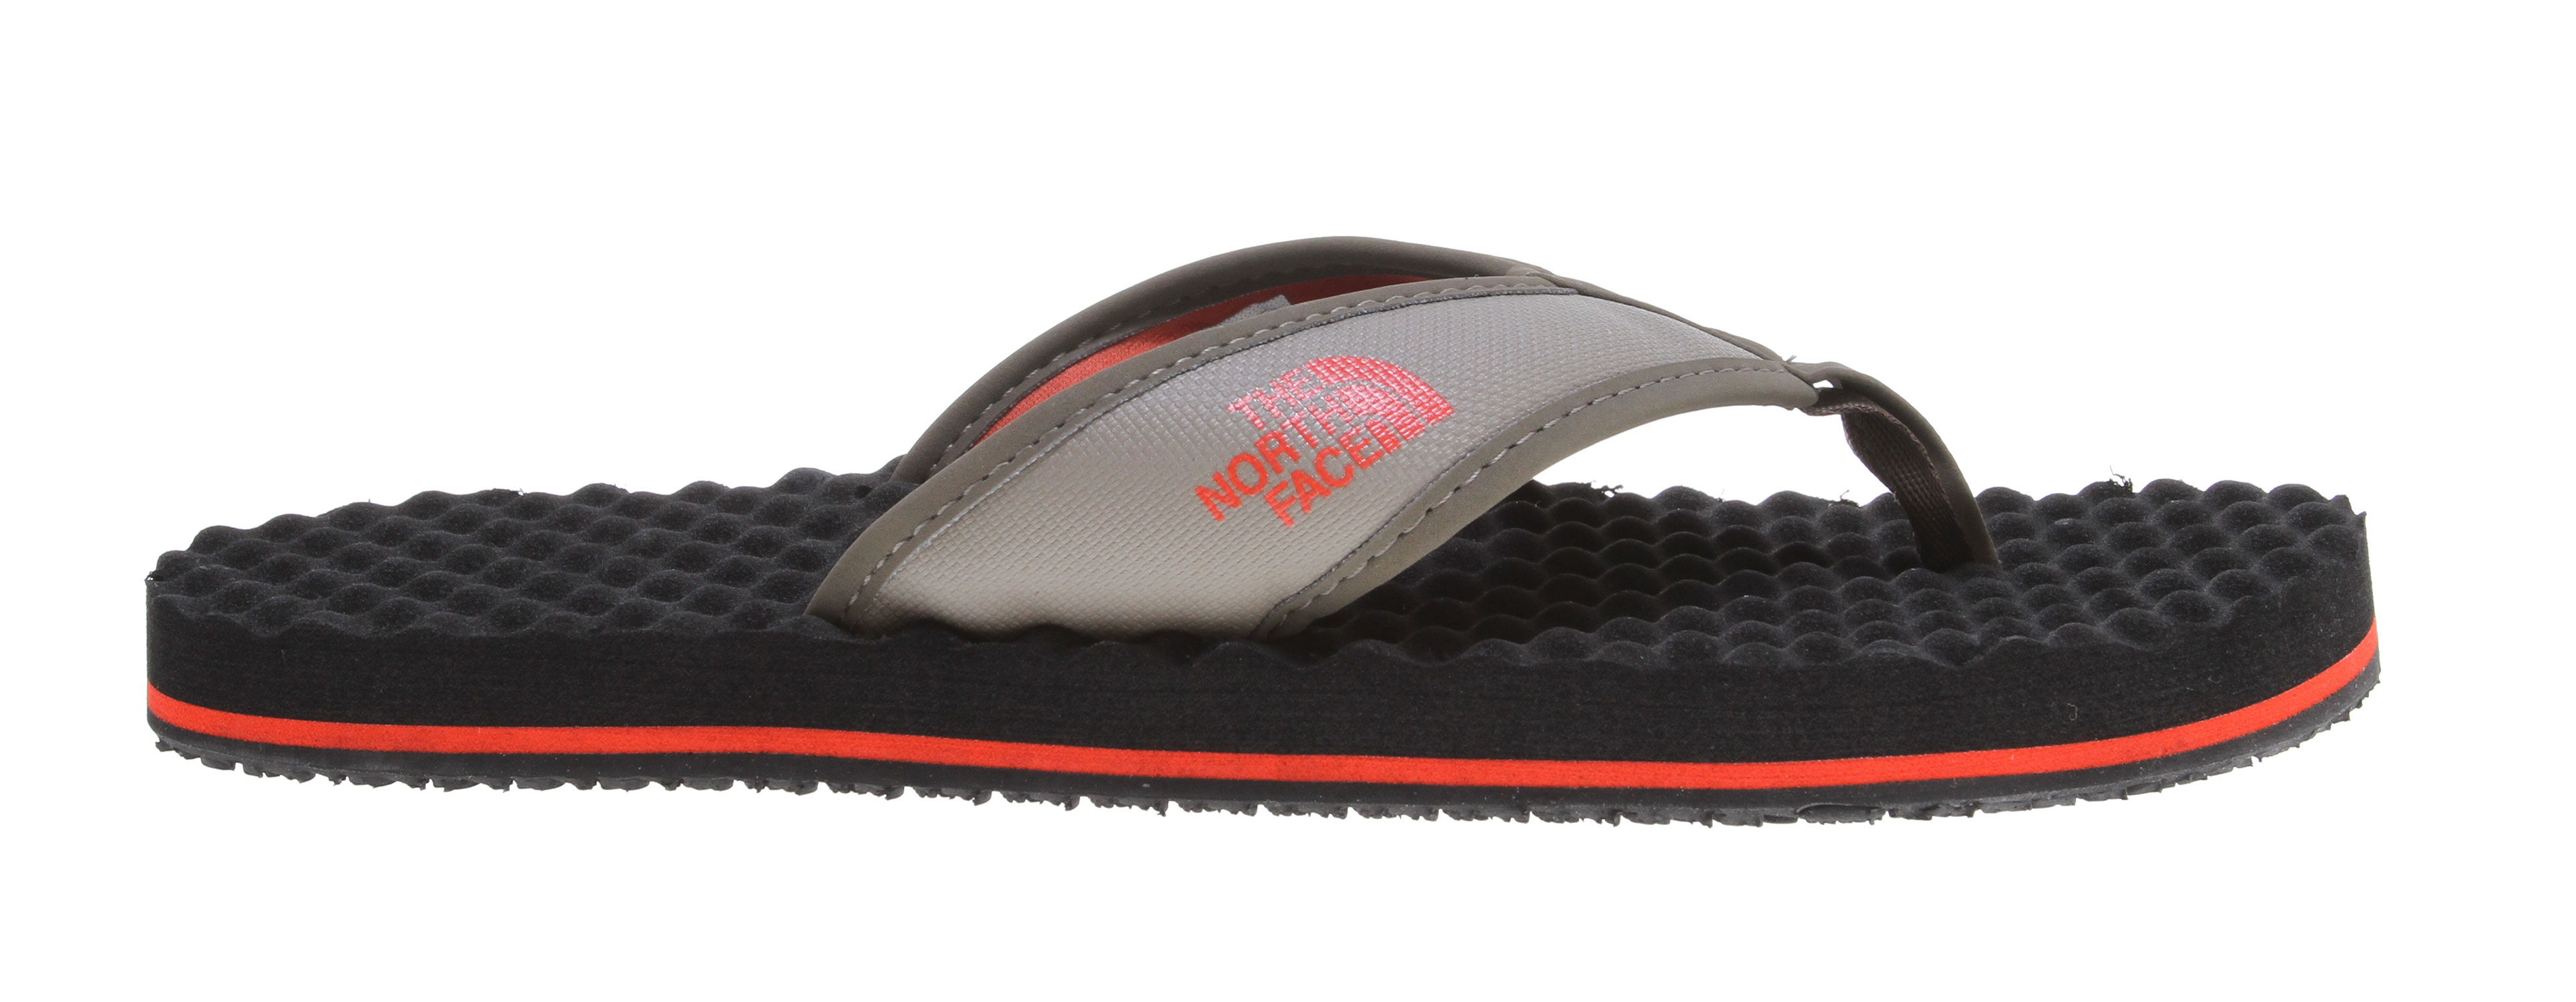 "Camp and Hike ""These are so comfortable you won't want to leave base camp!"" -Cedar Wright, The North Face Athlete, Rock Climber The Base Camp Flip-Flop is sure to outlast even your most rambunctious outings. Designed with the same material as our hyper-durable expedition equipment, the straps on these sandals offer relentless support. Coupled with an ultra-cushy egg crate-inspired footbed, if your feet could smile - they would.Key Features of the The North Face Base Camp Flip Flop Sandals: Inspired by our hyper-durable expedition bags, a lightweight-yet-rugged sandal fit for apres mountain or day-to-day wear and tear. PVC-free Hypalon strap with soft polyurethane (PU) binding and jersey lining Extra cushy EVA egg crate-inspired footbed with anatomical arch support Rubber outsole Imported - $20.95"